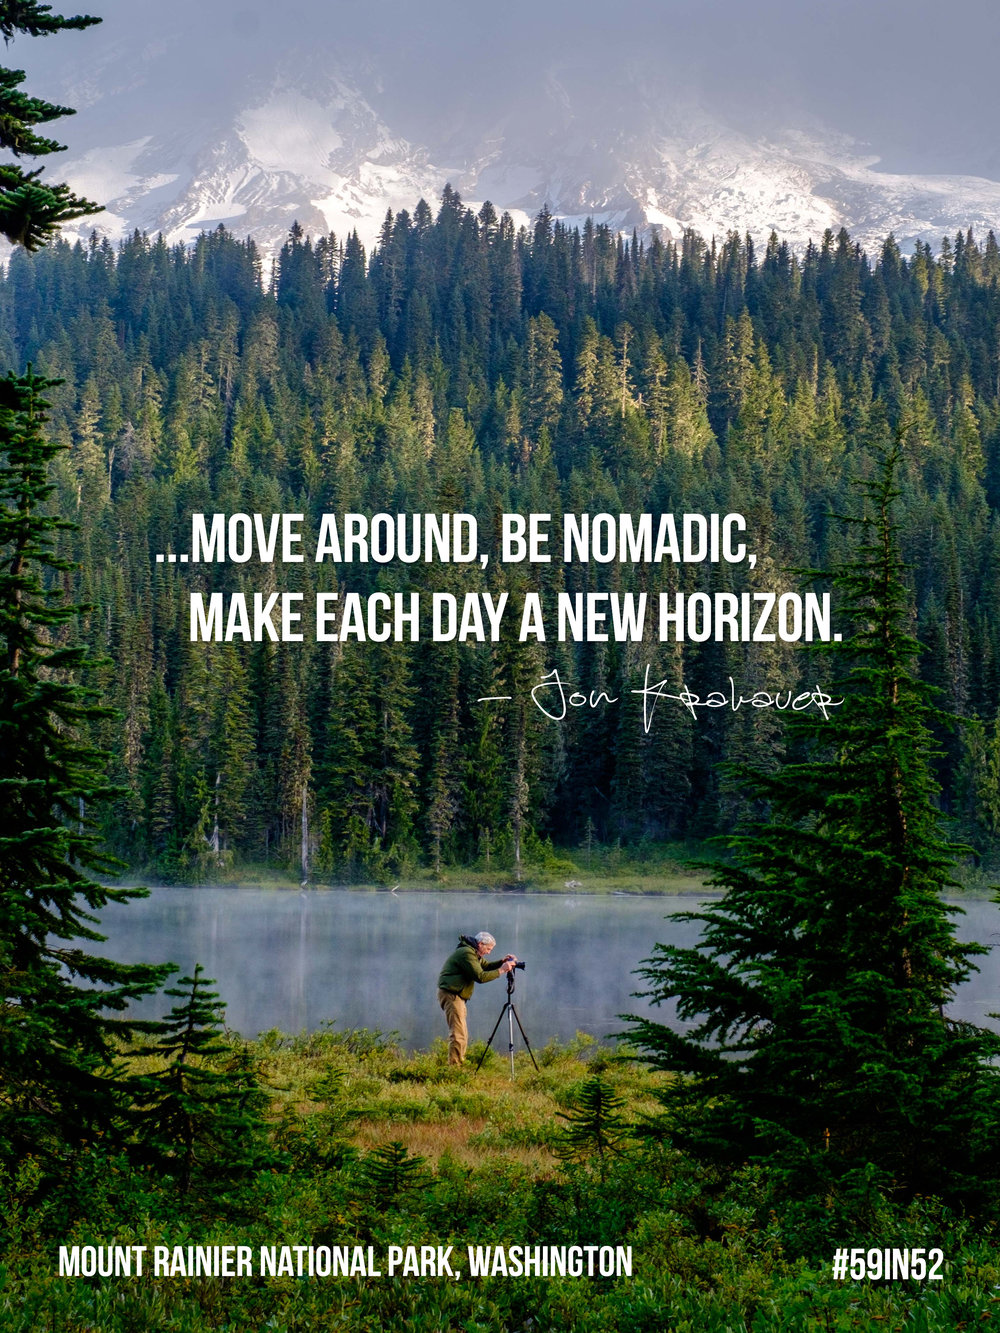 'Move around, be nomadic. Make each day a new horizon.' - Jon Krakauer, Into The Wild